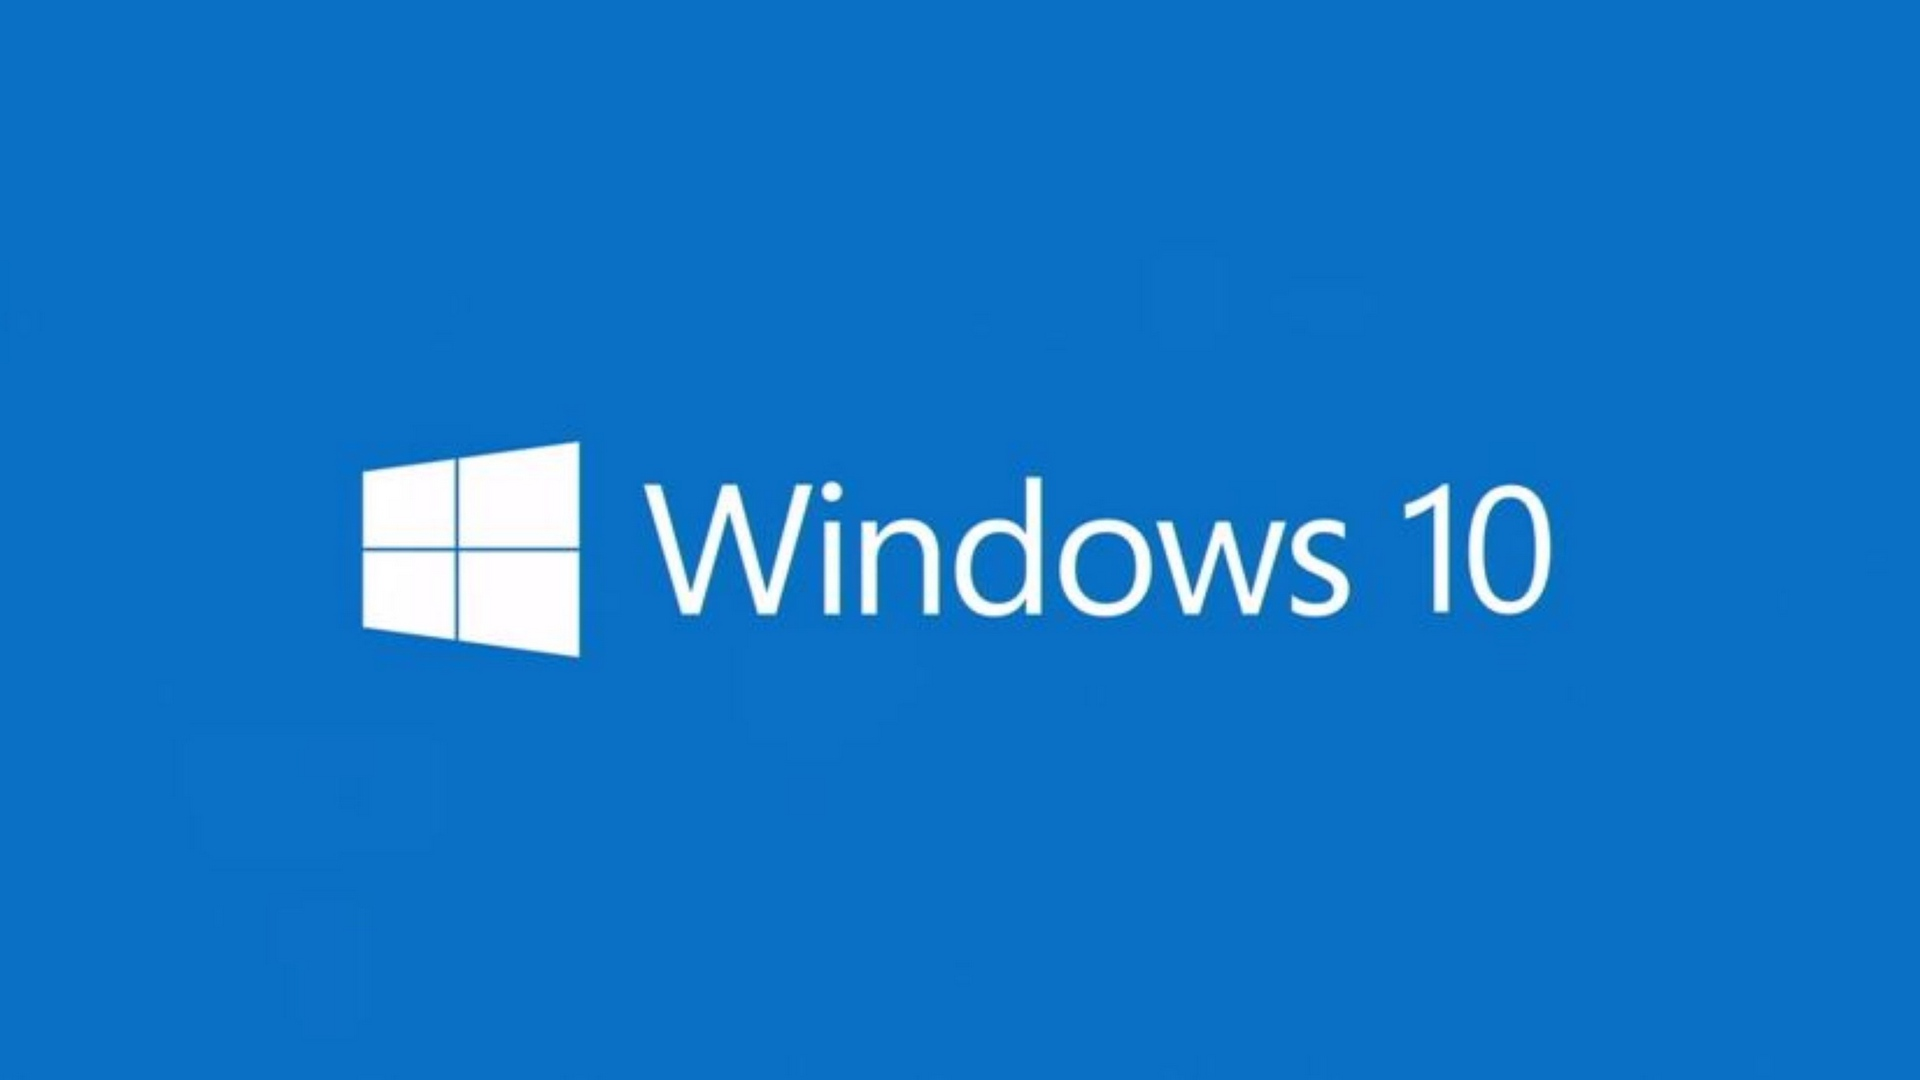 HDoboi.Kiev.ua - Обои windows 10 для windows 7